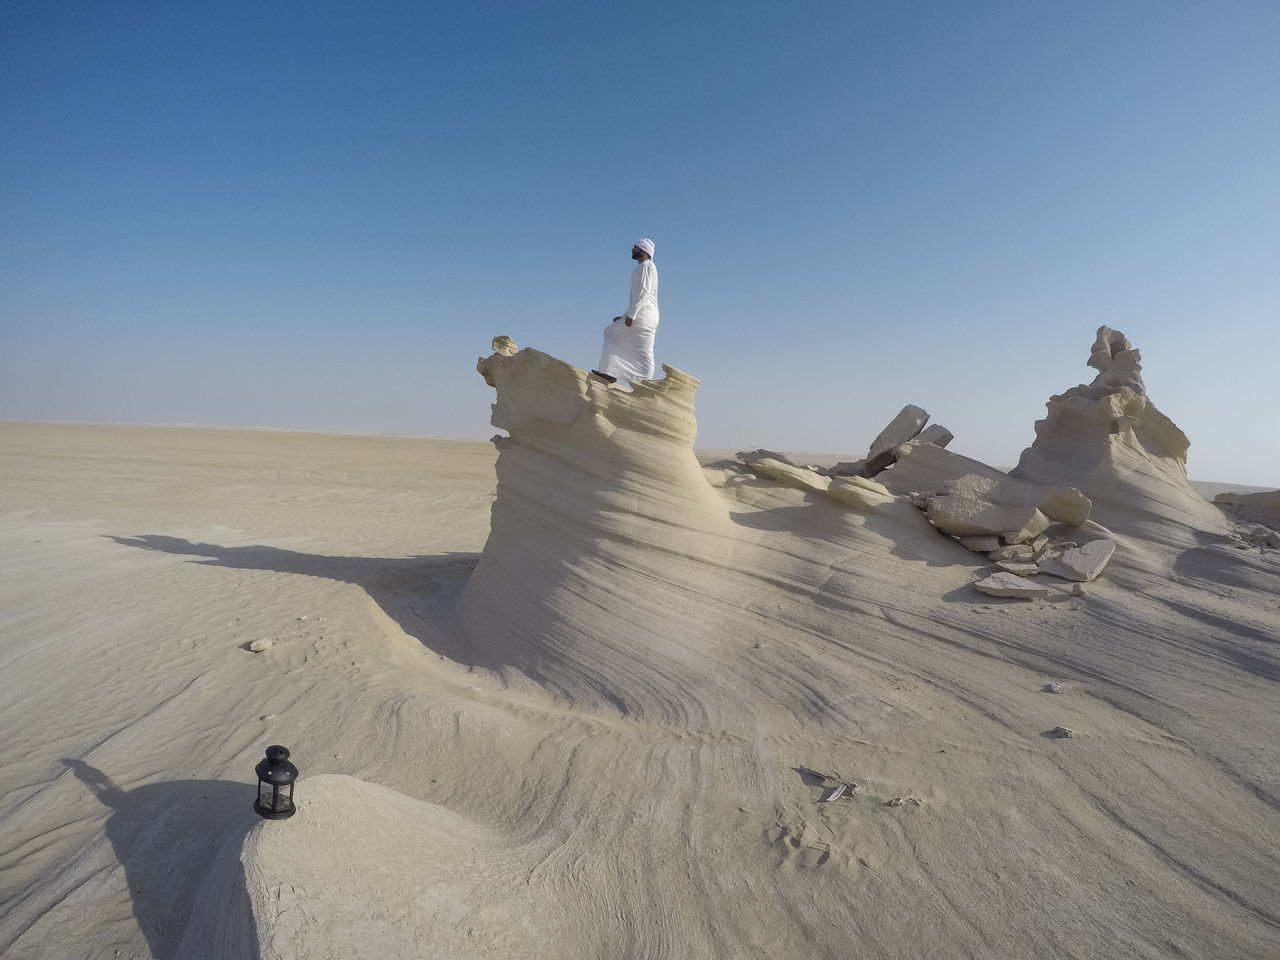 Abudhabi Arabic Style Arid Climate Art And Craft Beauty In Nature Clear Sky Creativity Day Desert Eid Full Length Human Representation Landscape Nature One Person Outdoors People Real People Sand Sand Dune Sculpture Shadow Sky Statue Sunlight